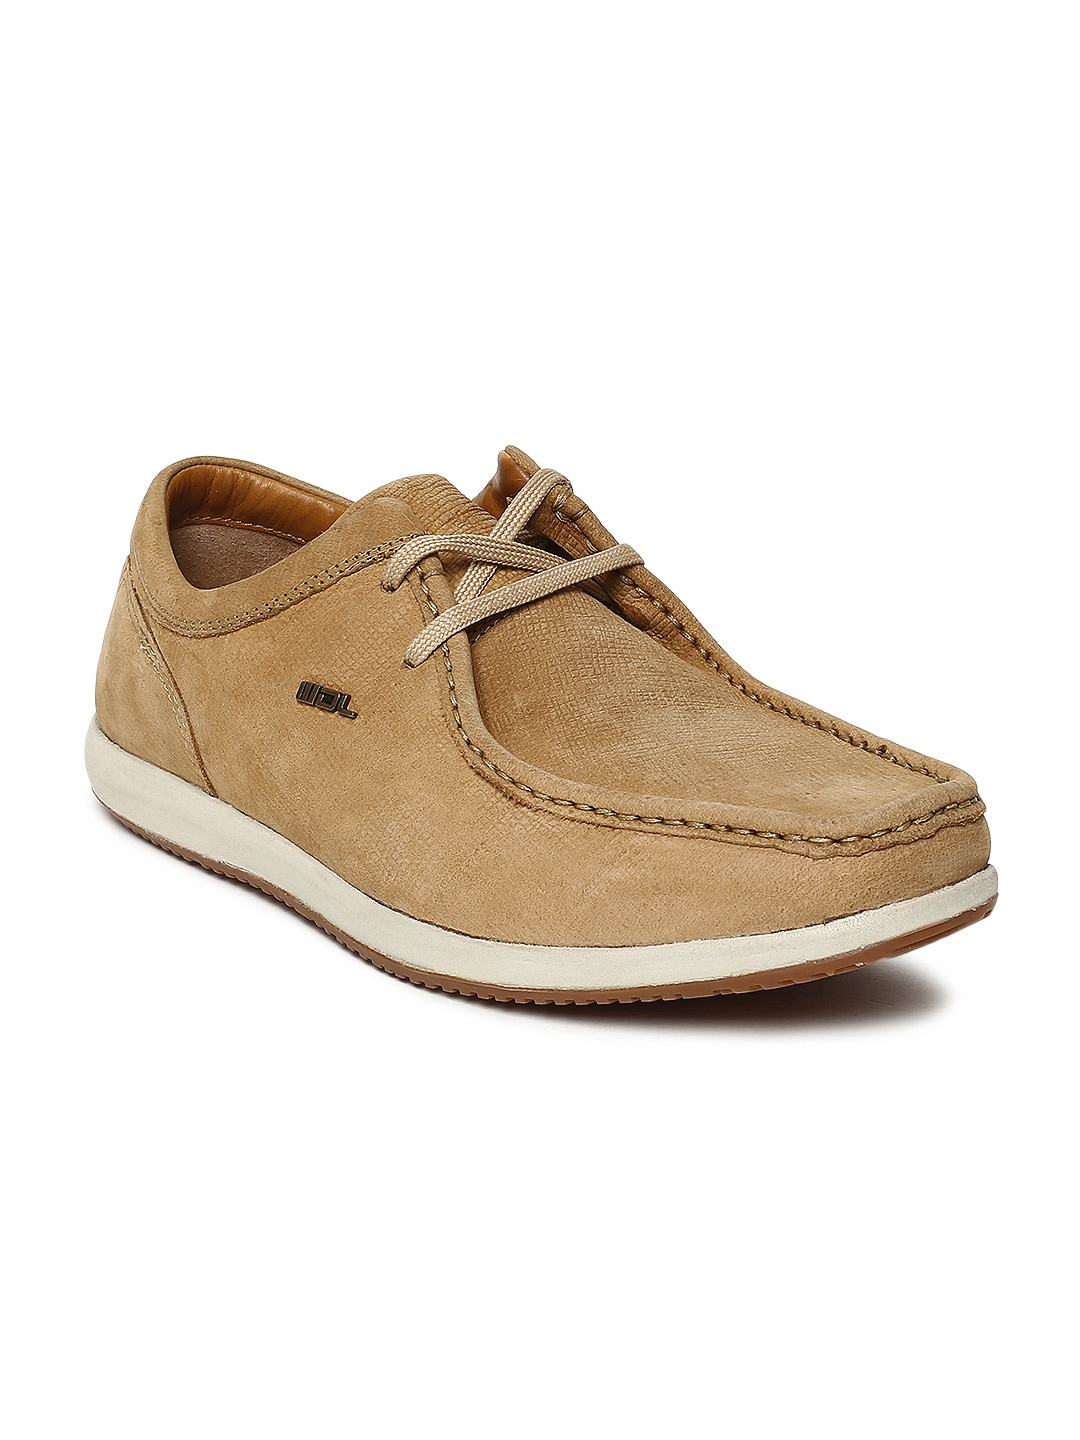 311cb37865a7 Woodland Shoes - Buy Genuine Woodland Shoes Online At Best Price - Myntra